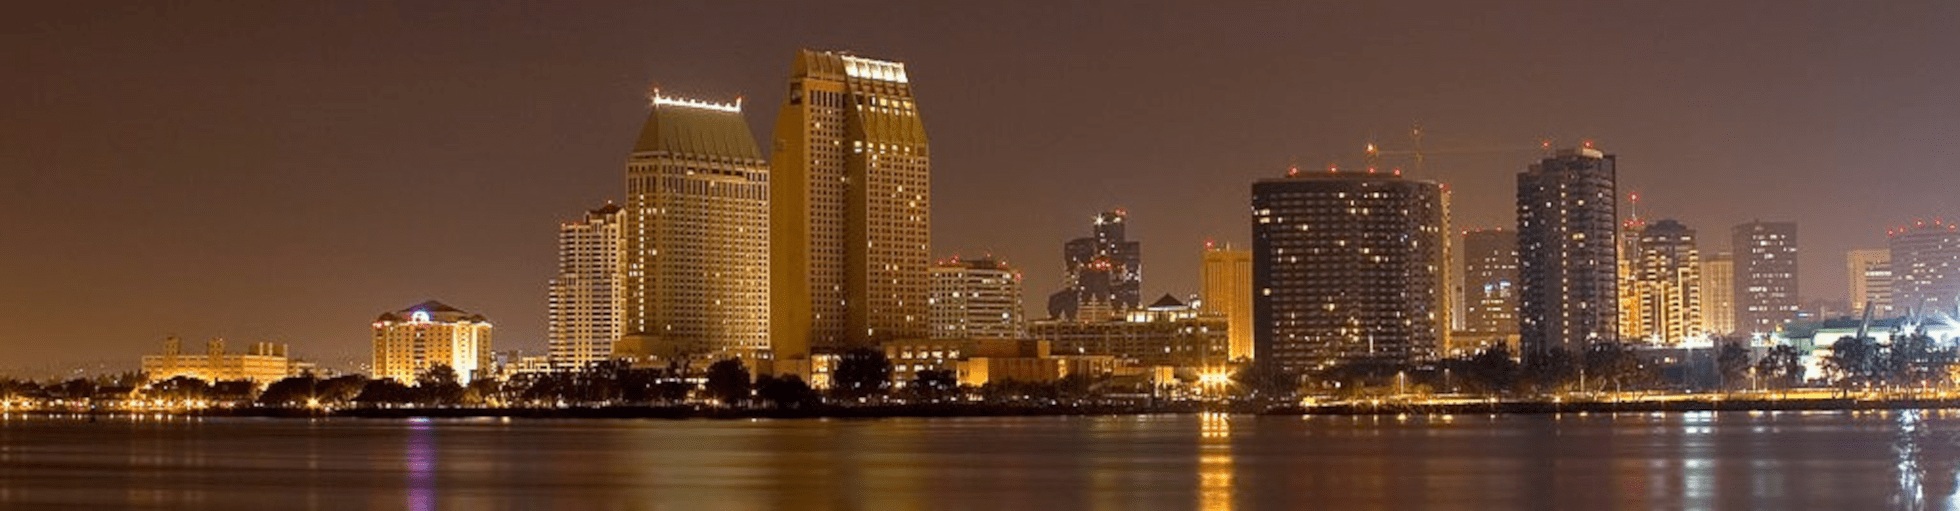 SD city at night